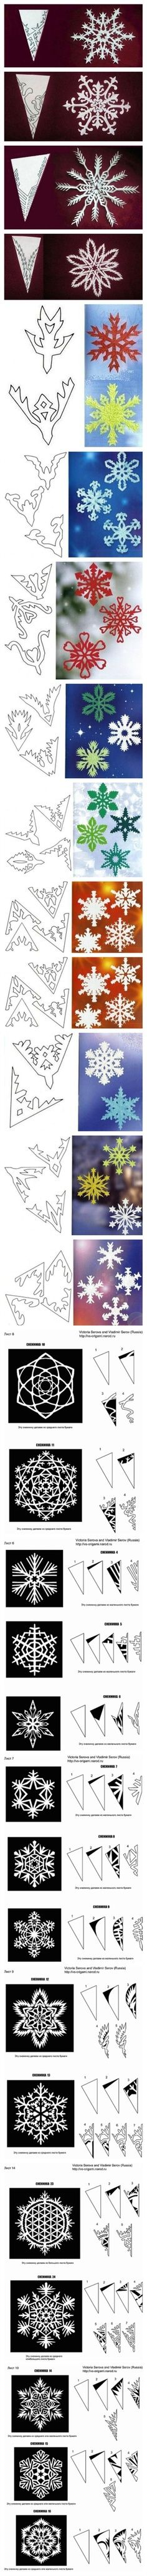 More snowflake tutorials. I have no idea how people make the intricate ones. They look so challenging.